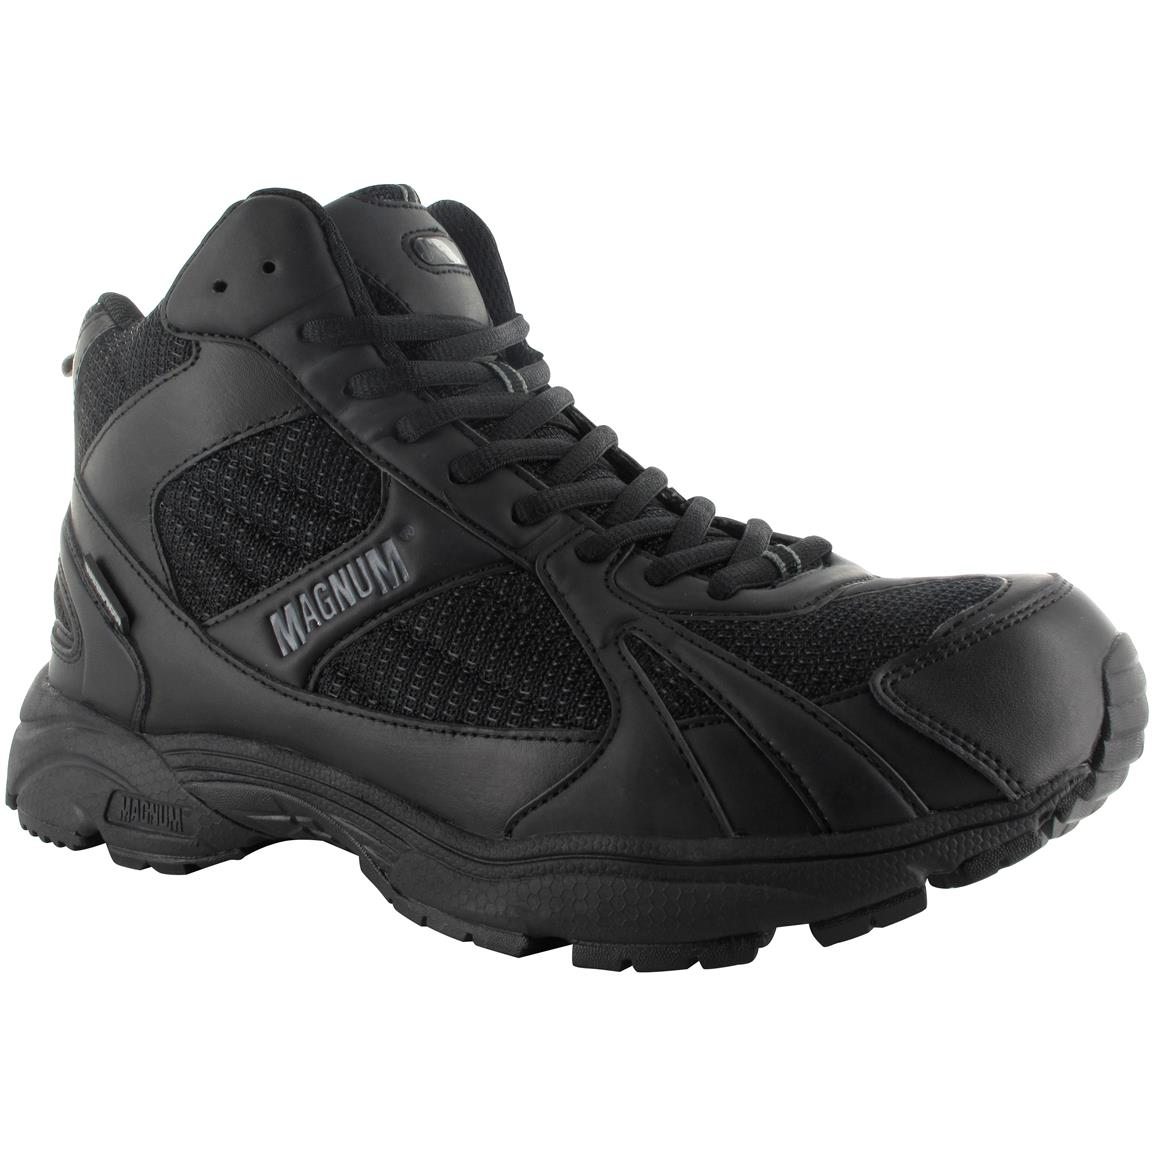 Magnum Men's M.U.S.T. Mid Cross Trainer Shoes, Waterproof, Black